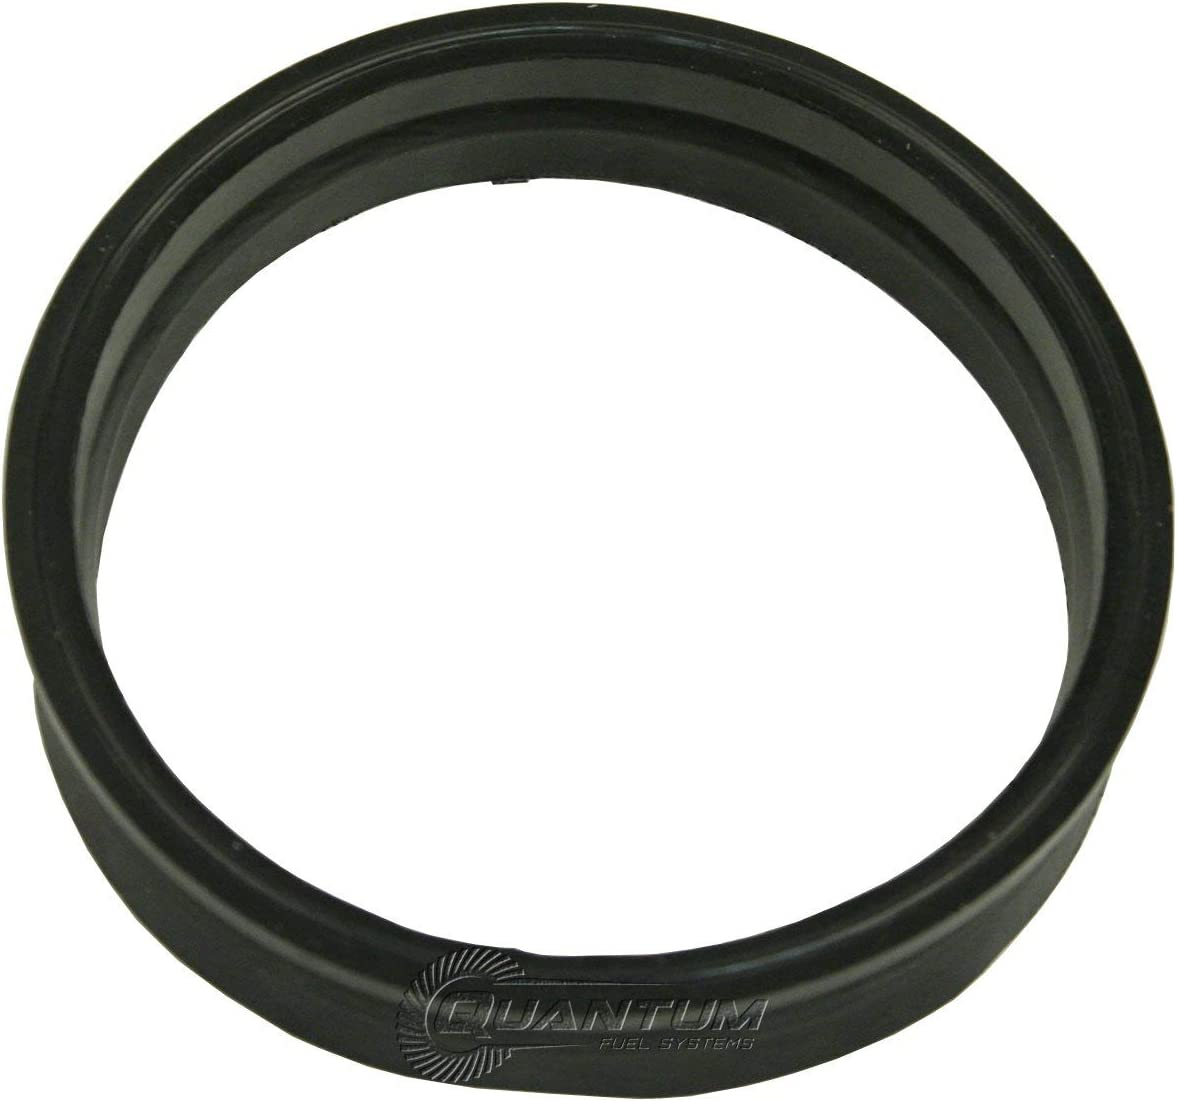 2000-2009 1998-2005 323-58767 Audi A3 HFP-TS35 Tank Seal Replacement for Volkswagen Sharan//Bora//Lupo